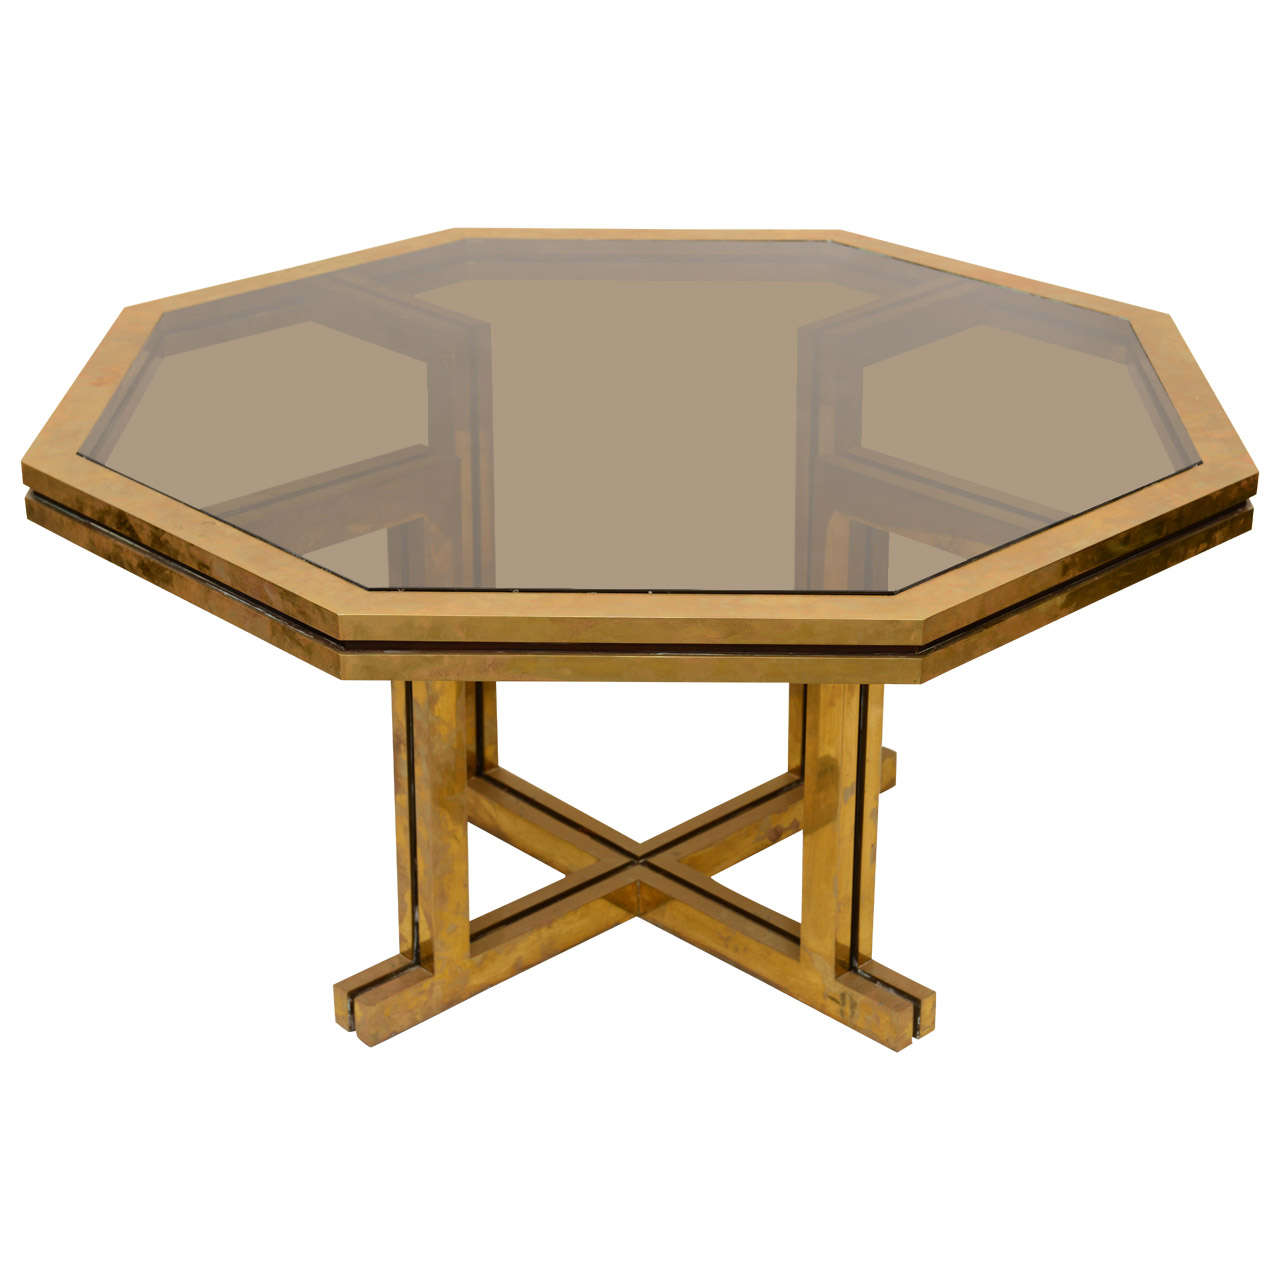 Willy rizzo for maison jansen octagonal brass table at 1stdibs for Table willy rizzo